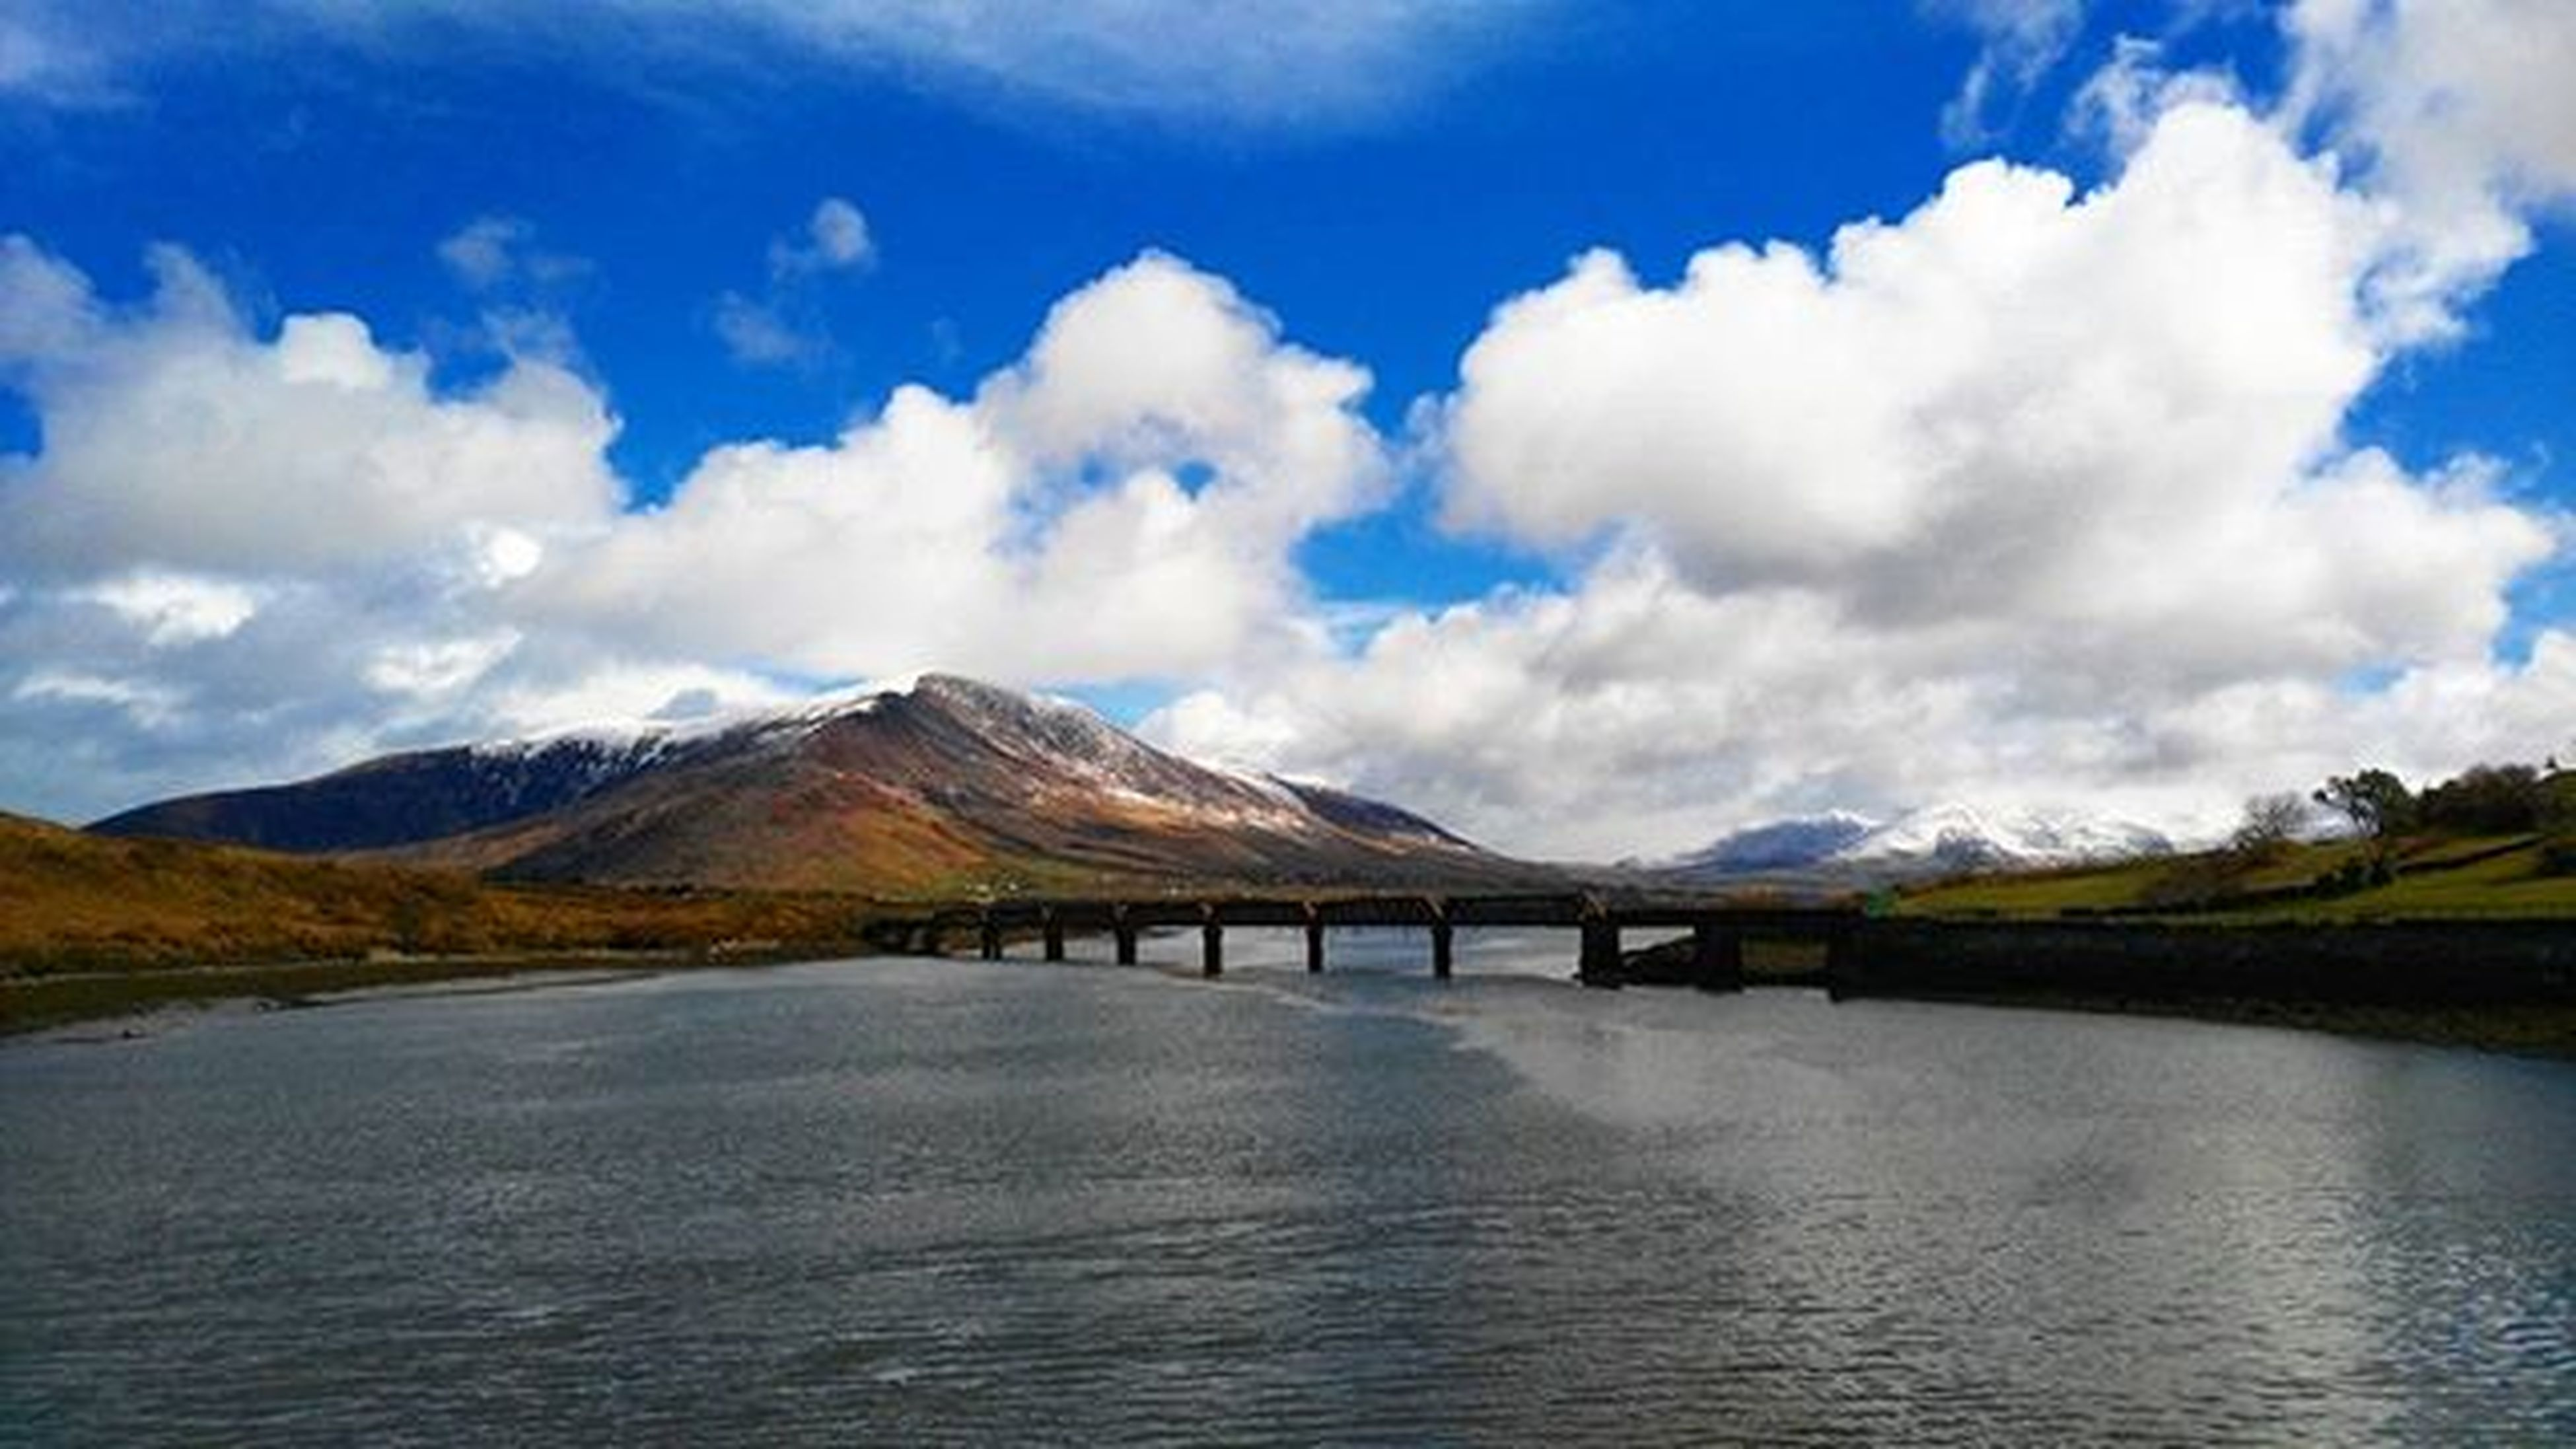 mountain, tranquil scene, sky, tranquility, water, scenics, mountain range, beauty in nature, cloud - sky, waterfront, cloud, lake, nature, river, landscape, the way forward, cloudy, non-urban scene, idyllic, blue